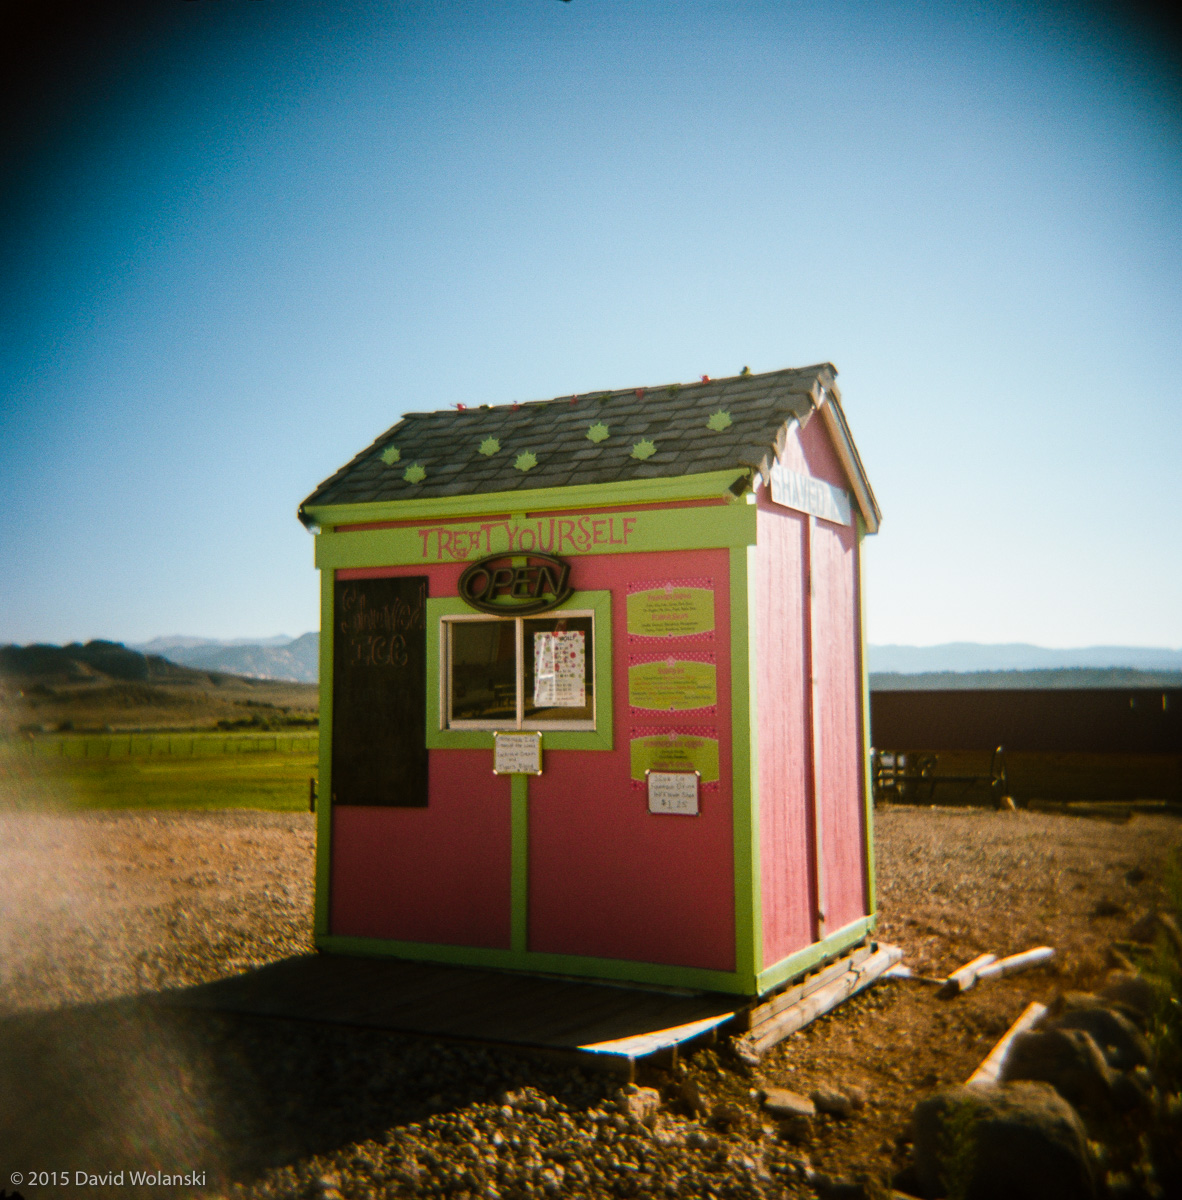 I had to do a photo of this colorful shed near Bryce Canyon Utah